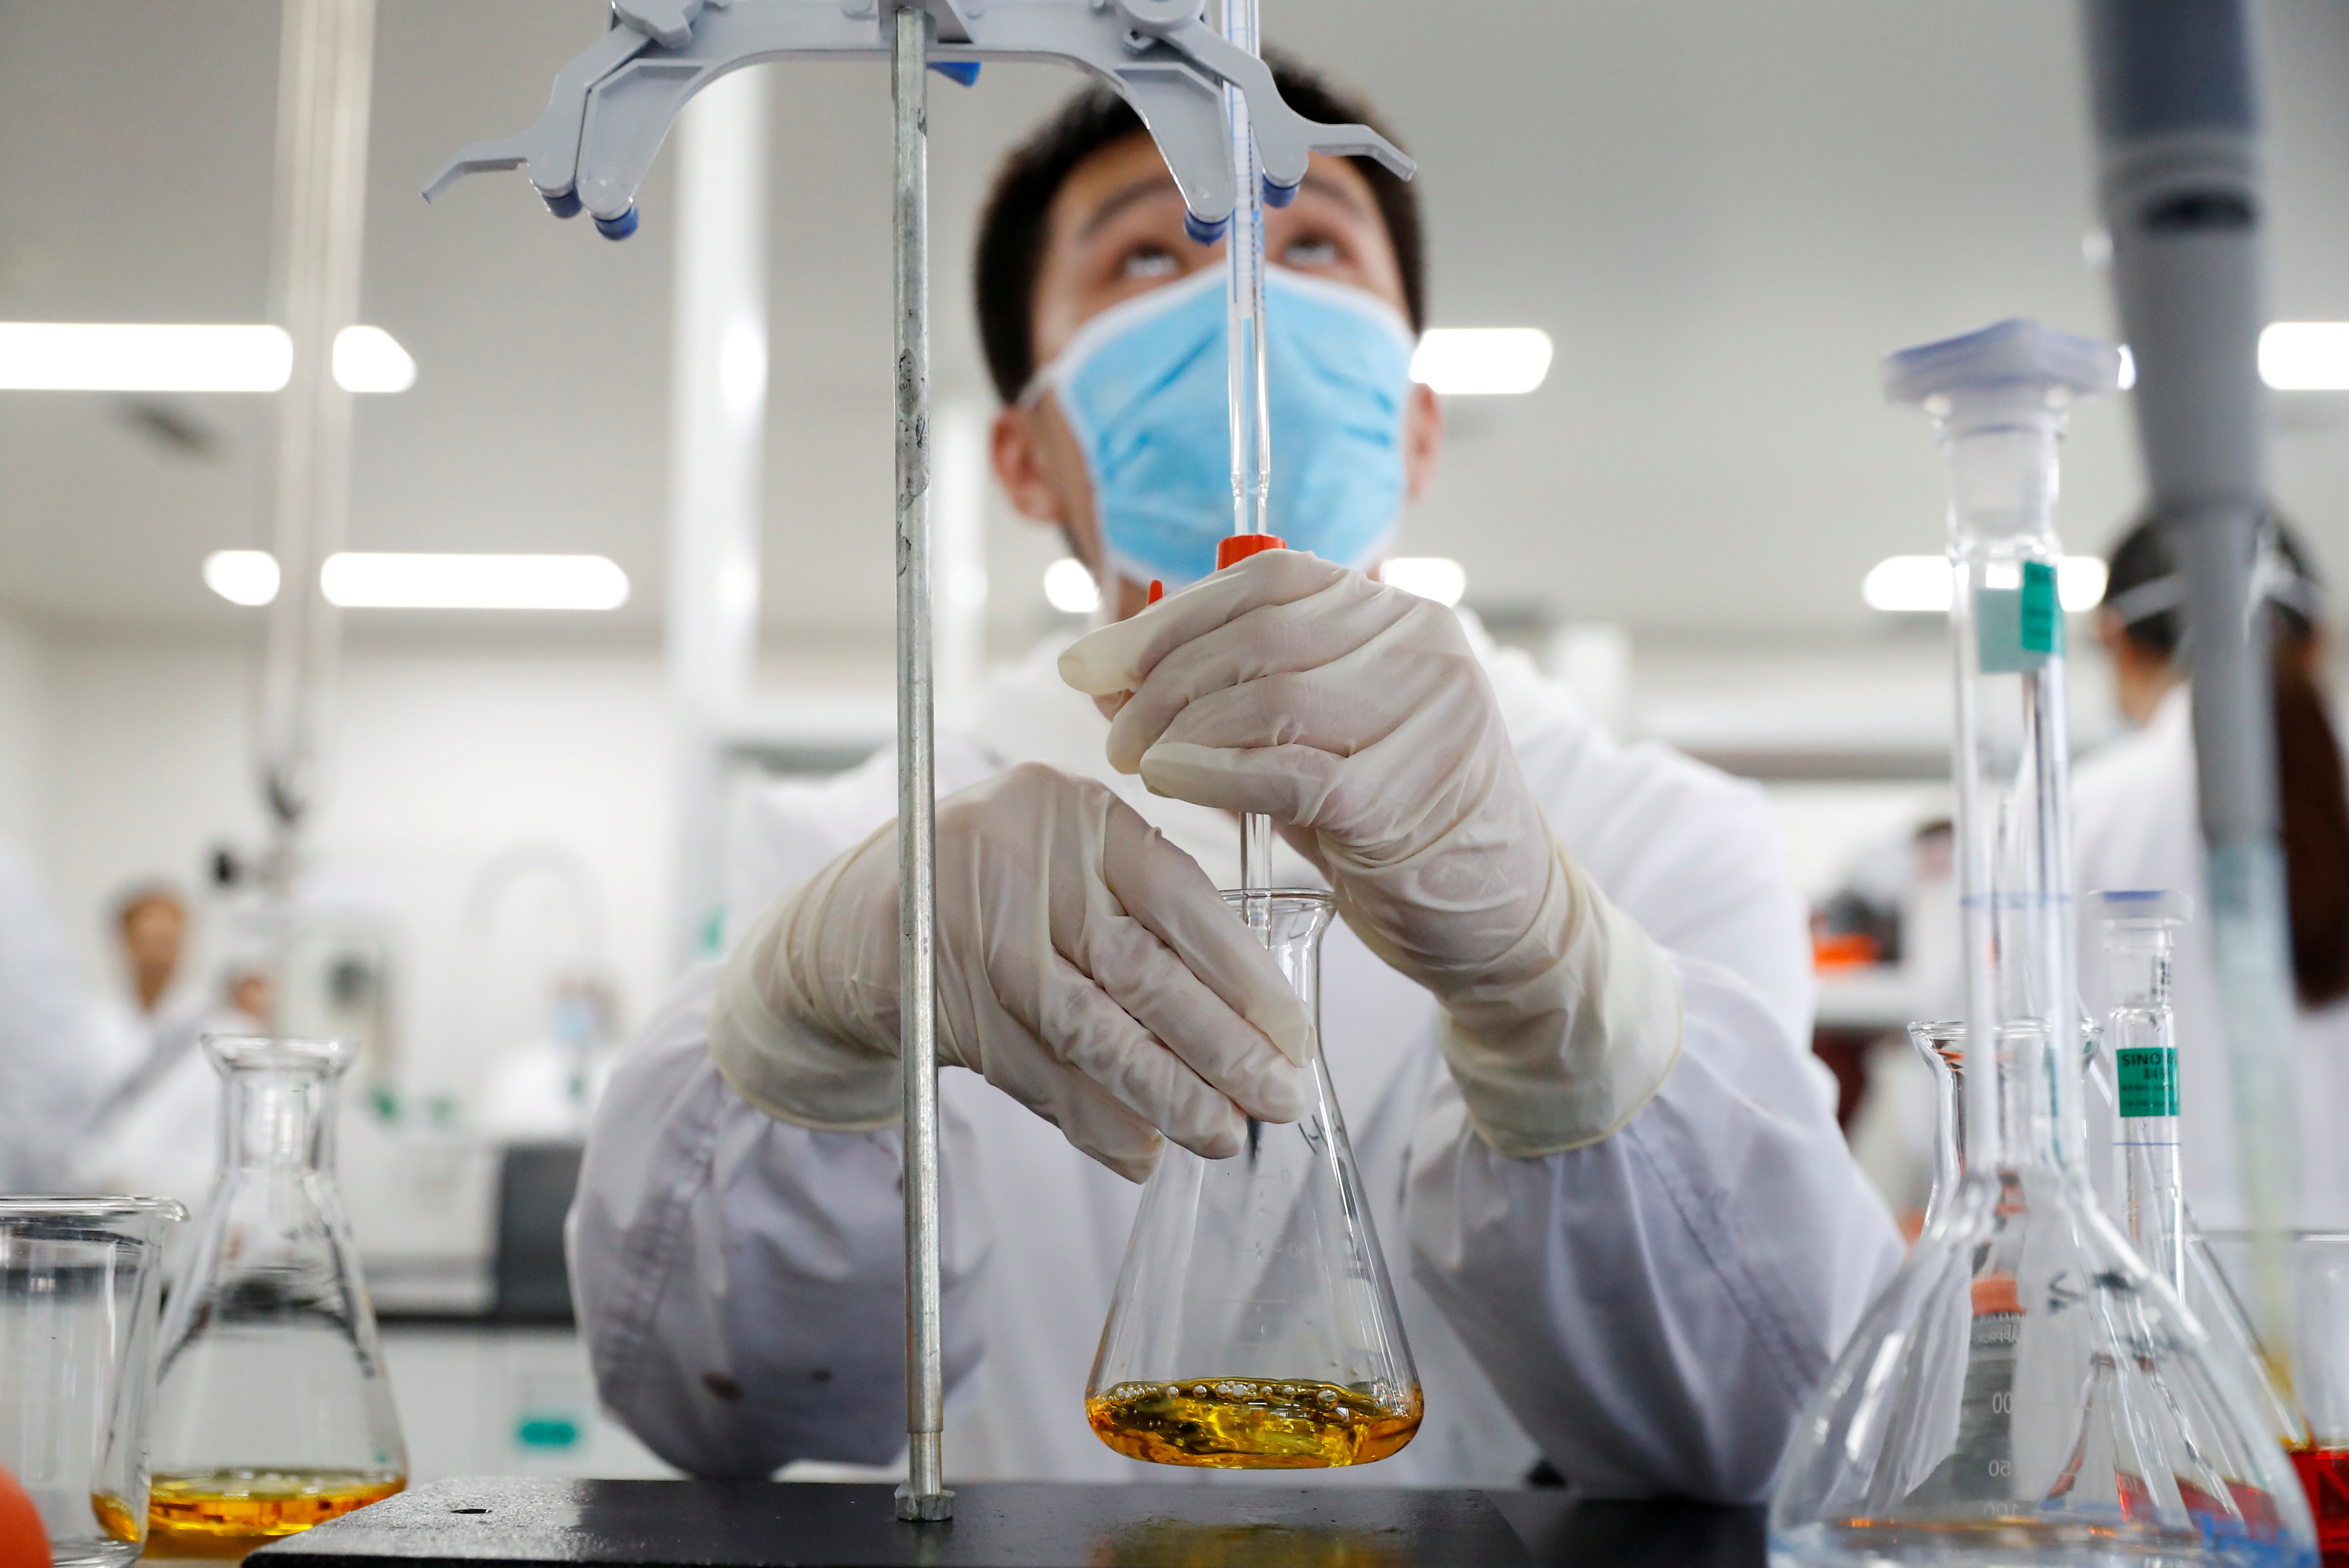 A man works in a laboratory of Chinese vaccine maker Sinovac Biotech, developing an experimental coronavirus disease (COVID-19) vaccine, during a government-organized media tour in Beijing, China, September 24, 2020. REUTERS/Thomas Peter     TPX IMAGES OF THE DAY - RC2X4J9NUGFK